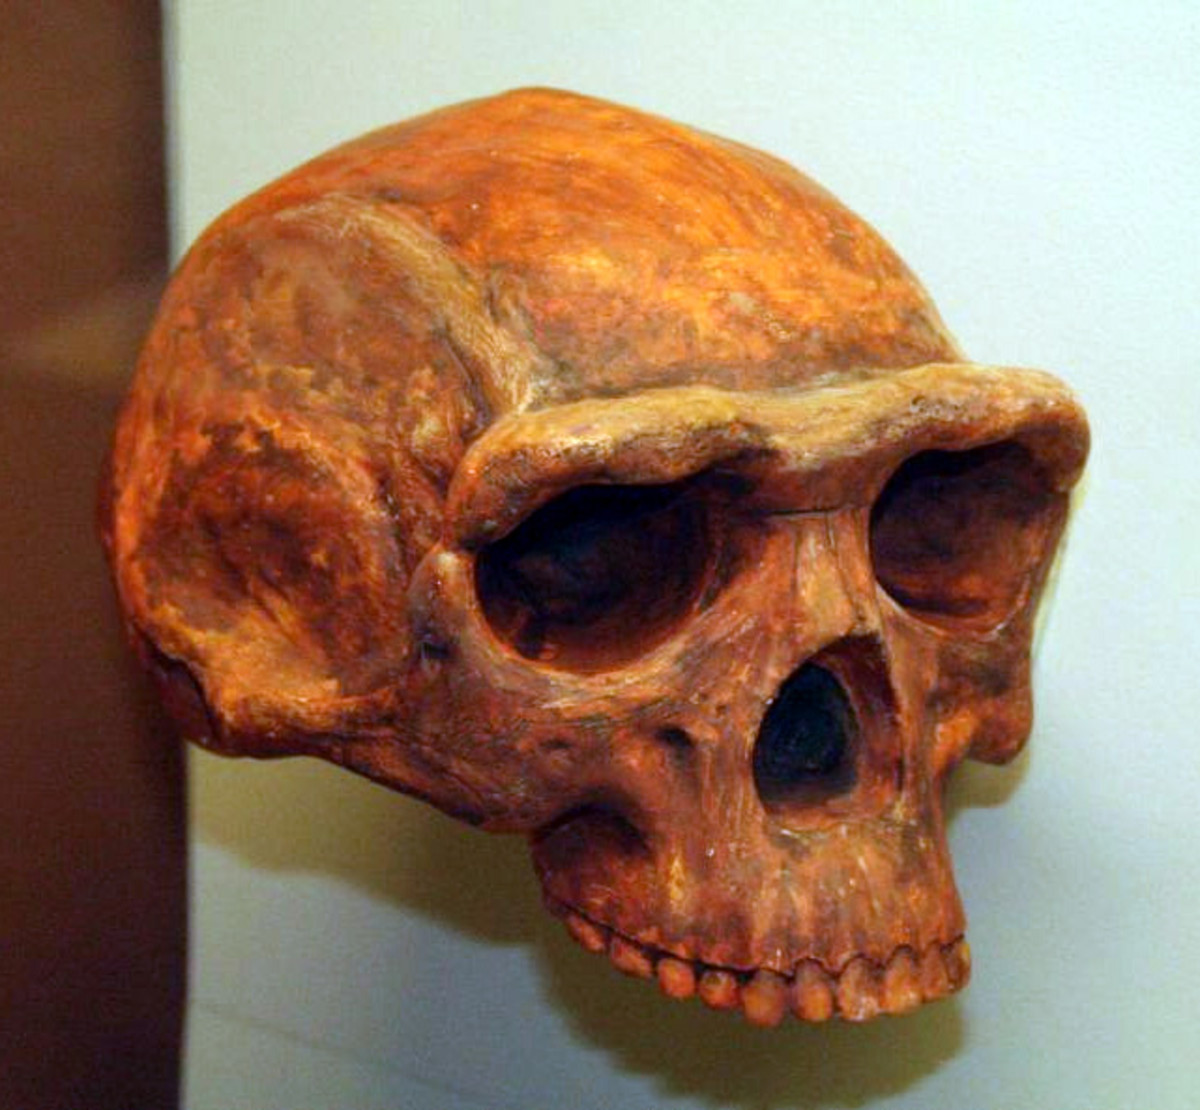 Homo erectus is the most 'human' looking of the species thus far, but still possesses a strong brow ridge and a brain capacity of only around 900 cubic centimetres